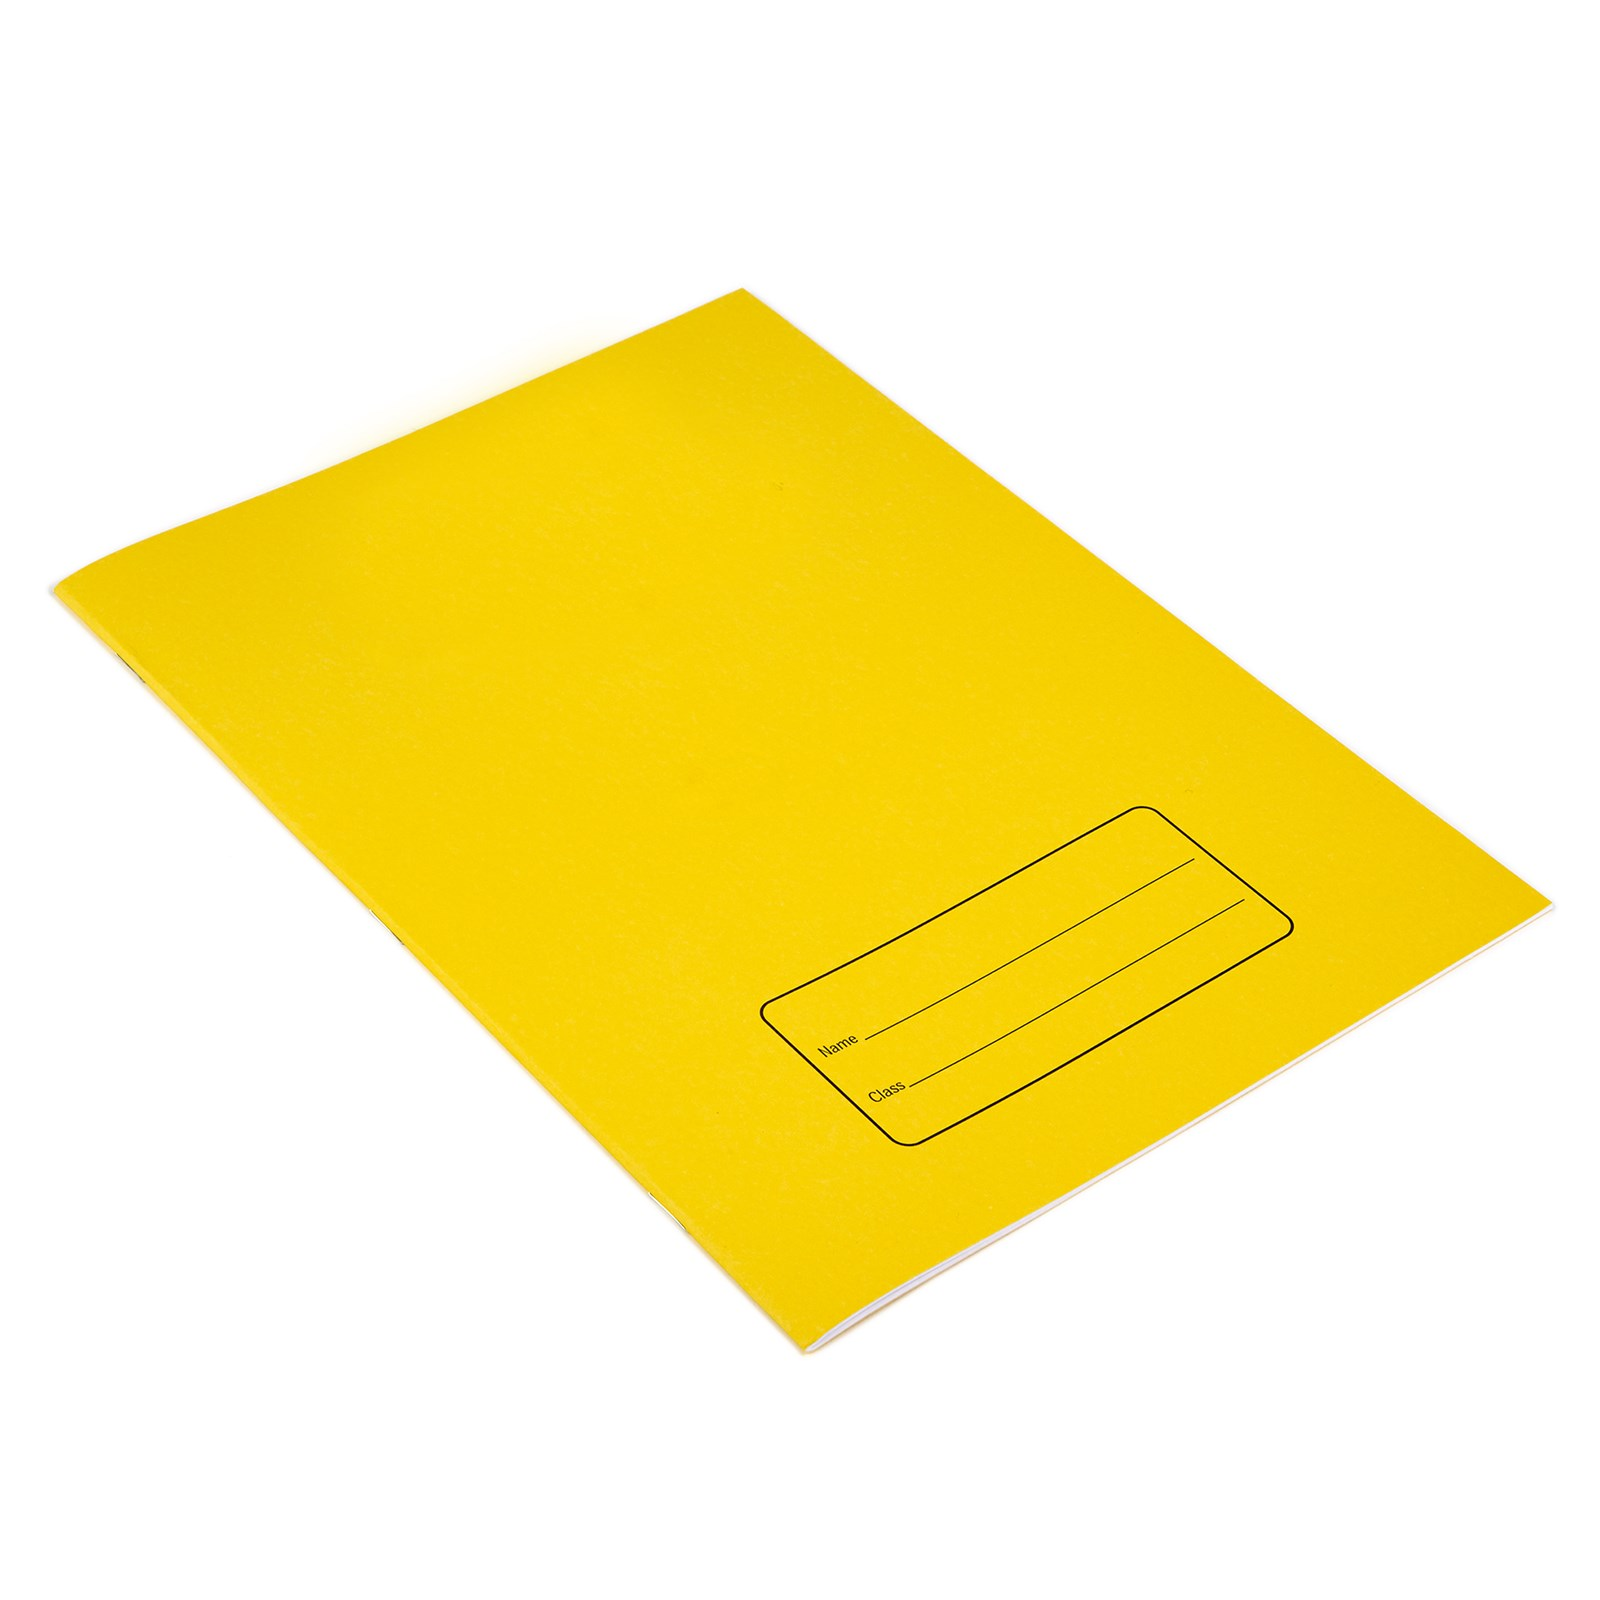 Classmates Yellow A4 Handwriting Book 32-Page, 6/21mm Ruled - Pack of 100